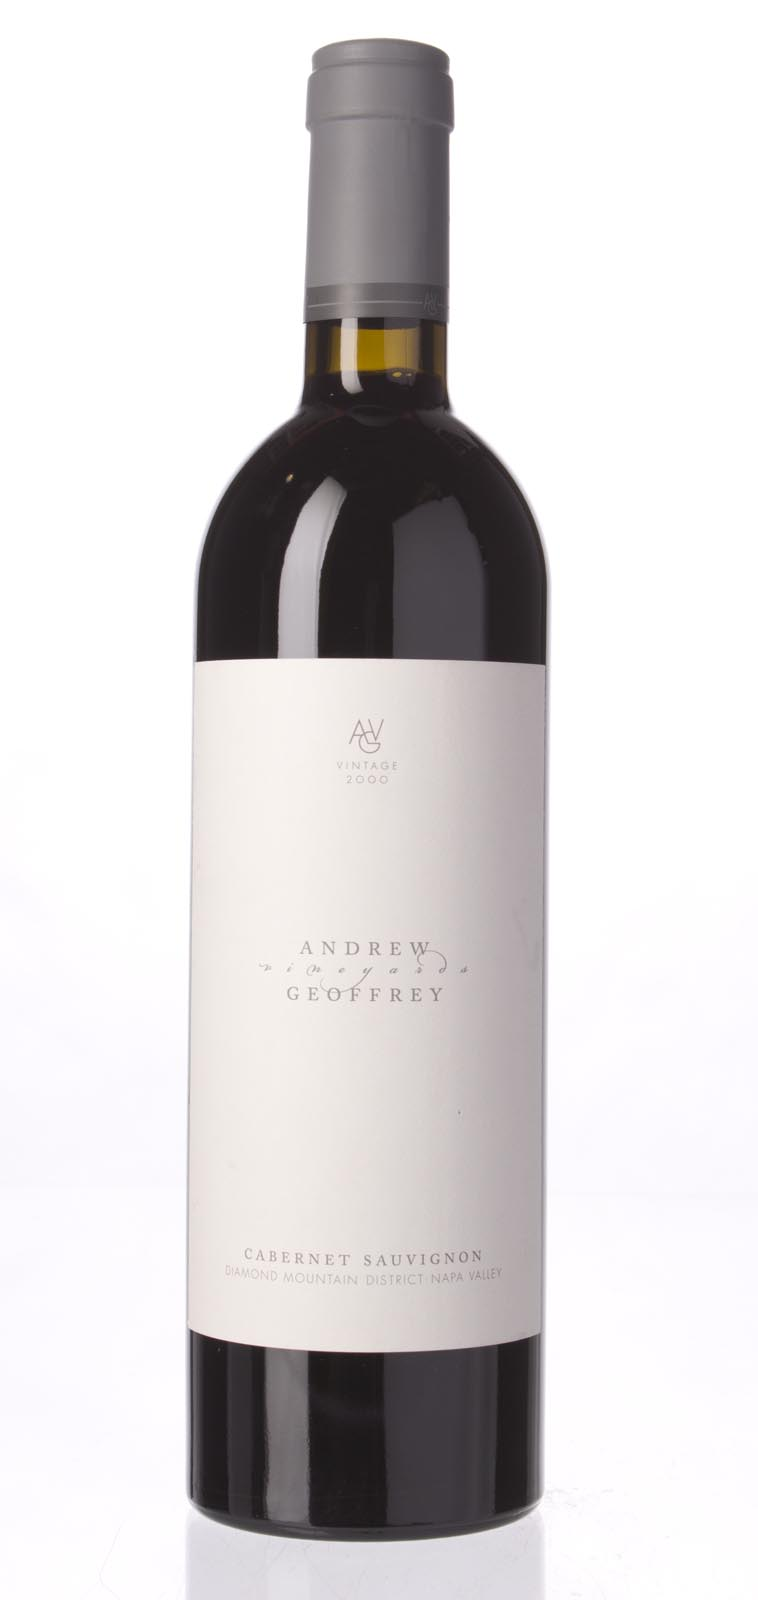 Andrew Geoffrey Cabernet Sauvignon Diamond Mountain District 2000, 750mL () from The BPW - Merchants of rare and fine wines.